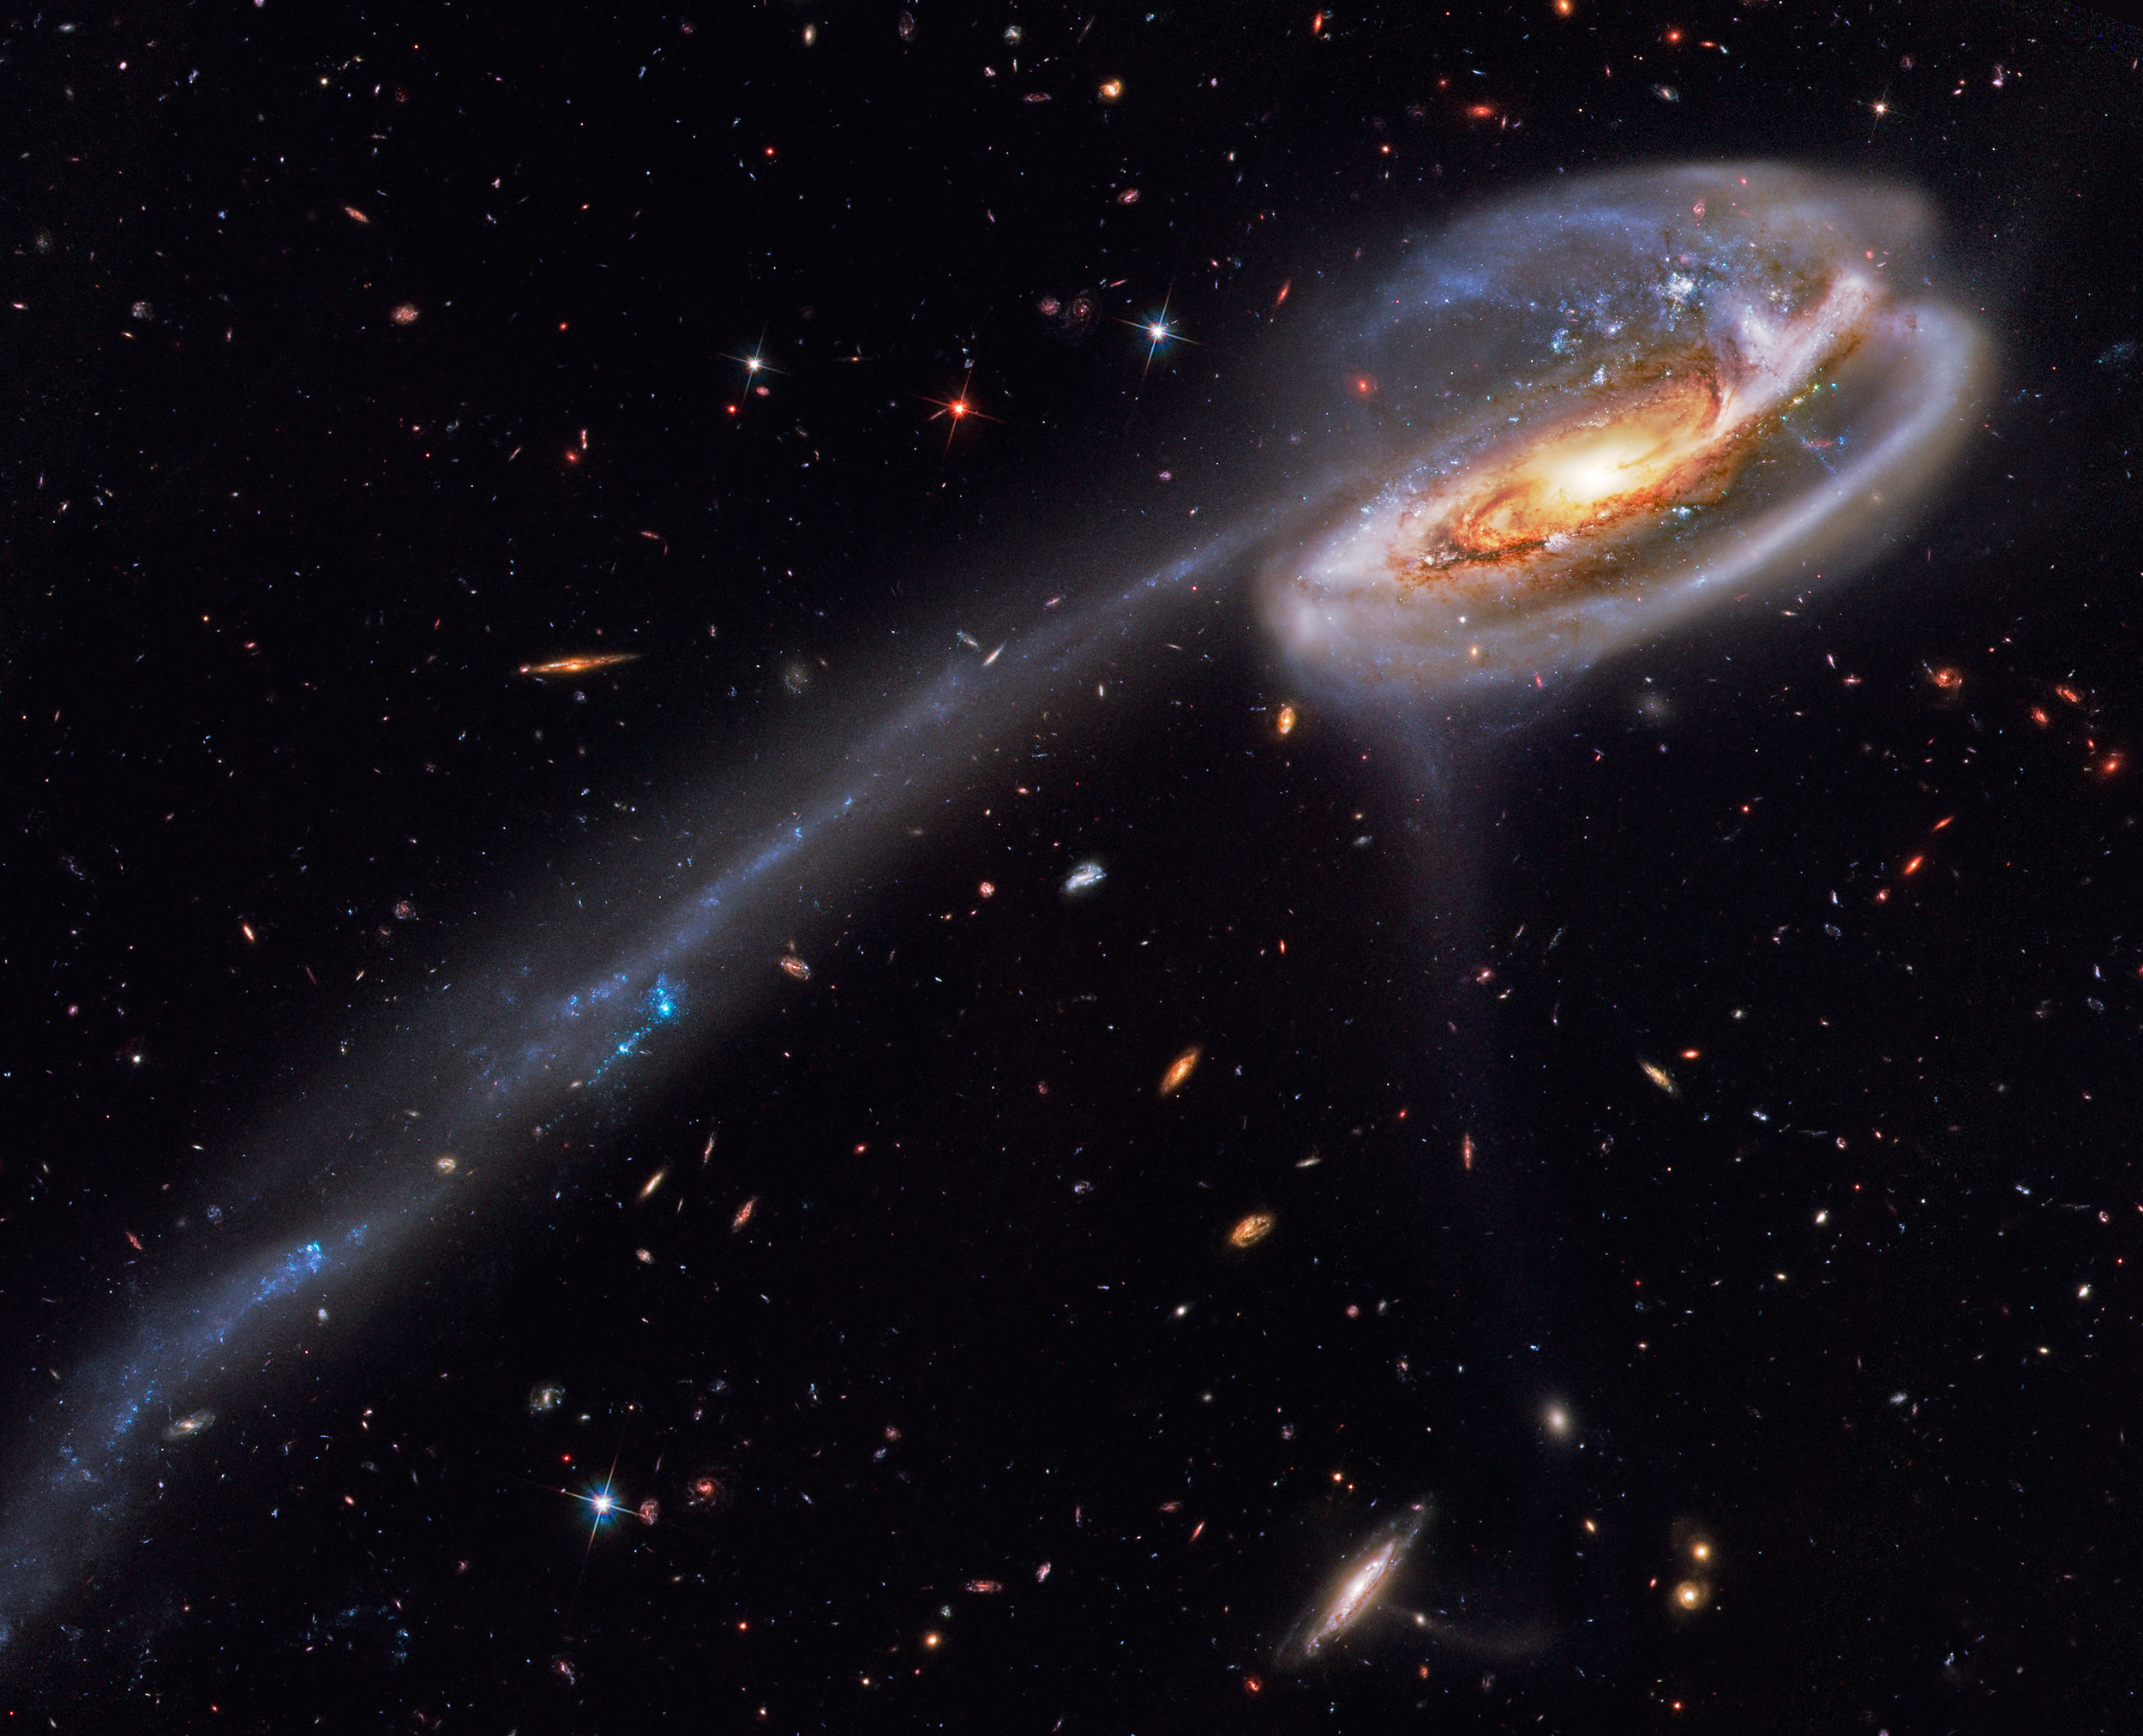 Disrupted spiral galaxy Arp 188, the Tadpole Galaxy